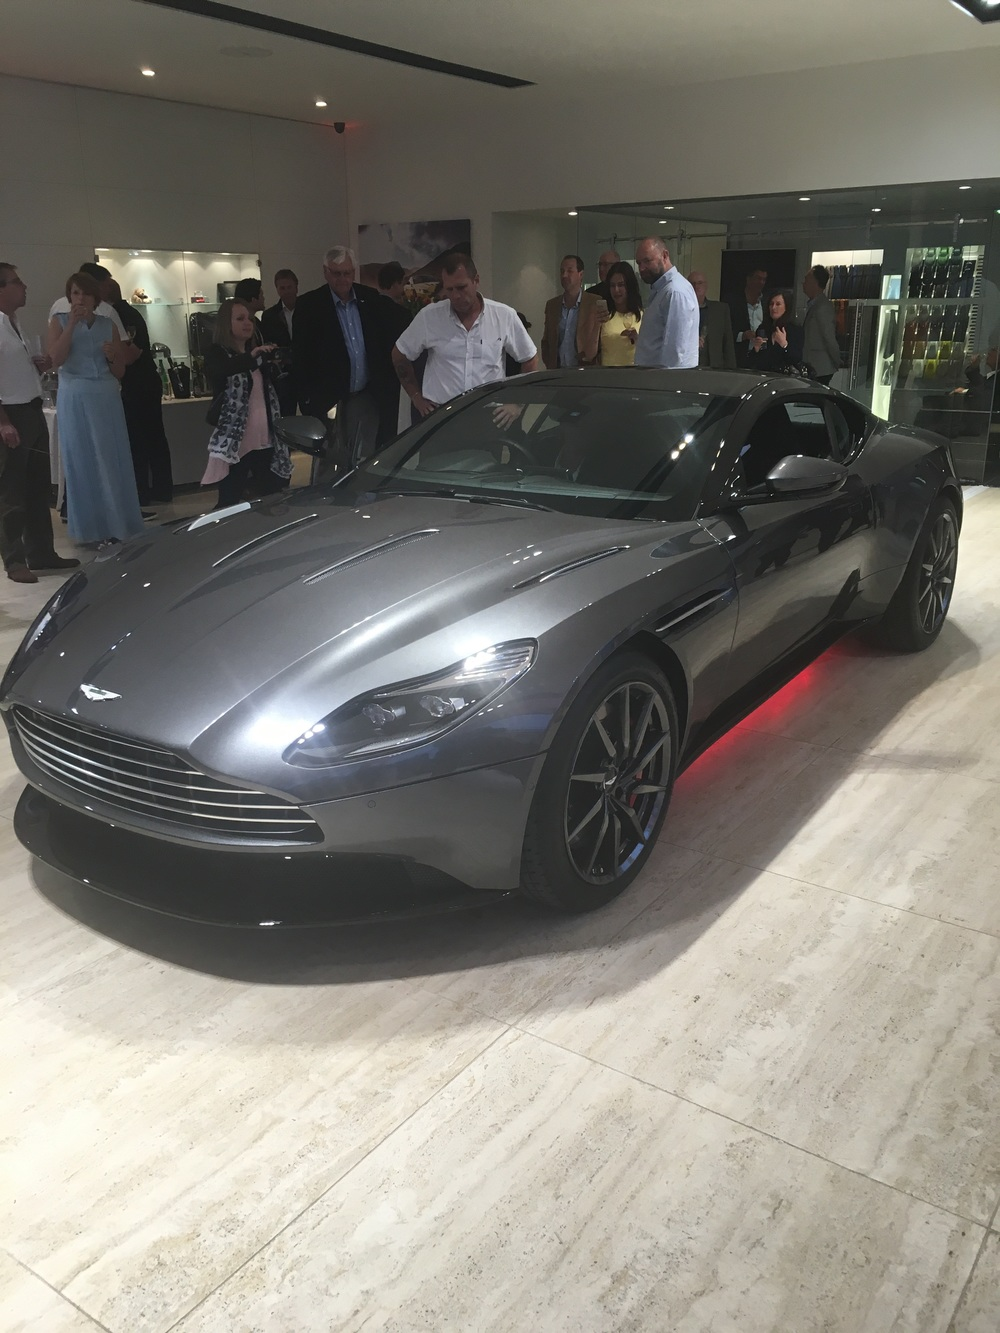 Here it is - Aston Martin DB11